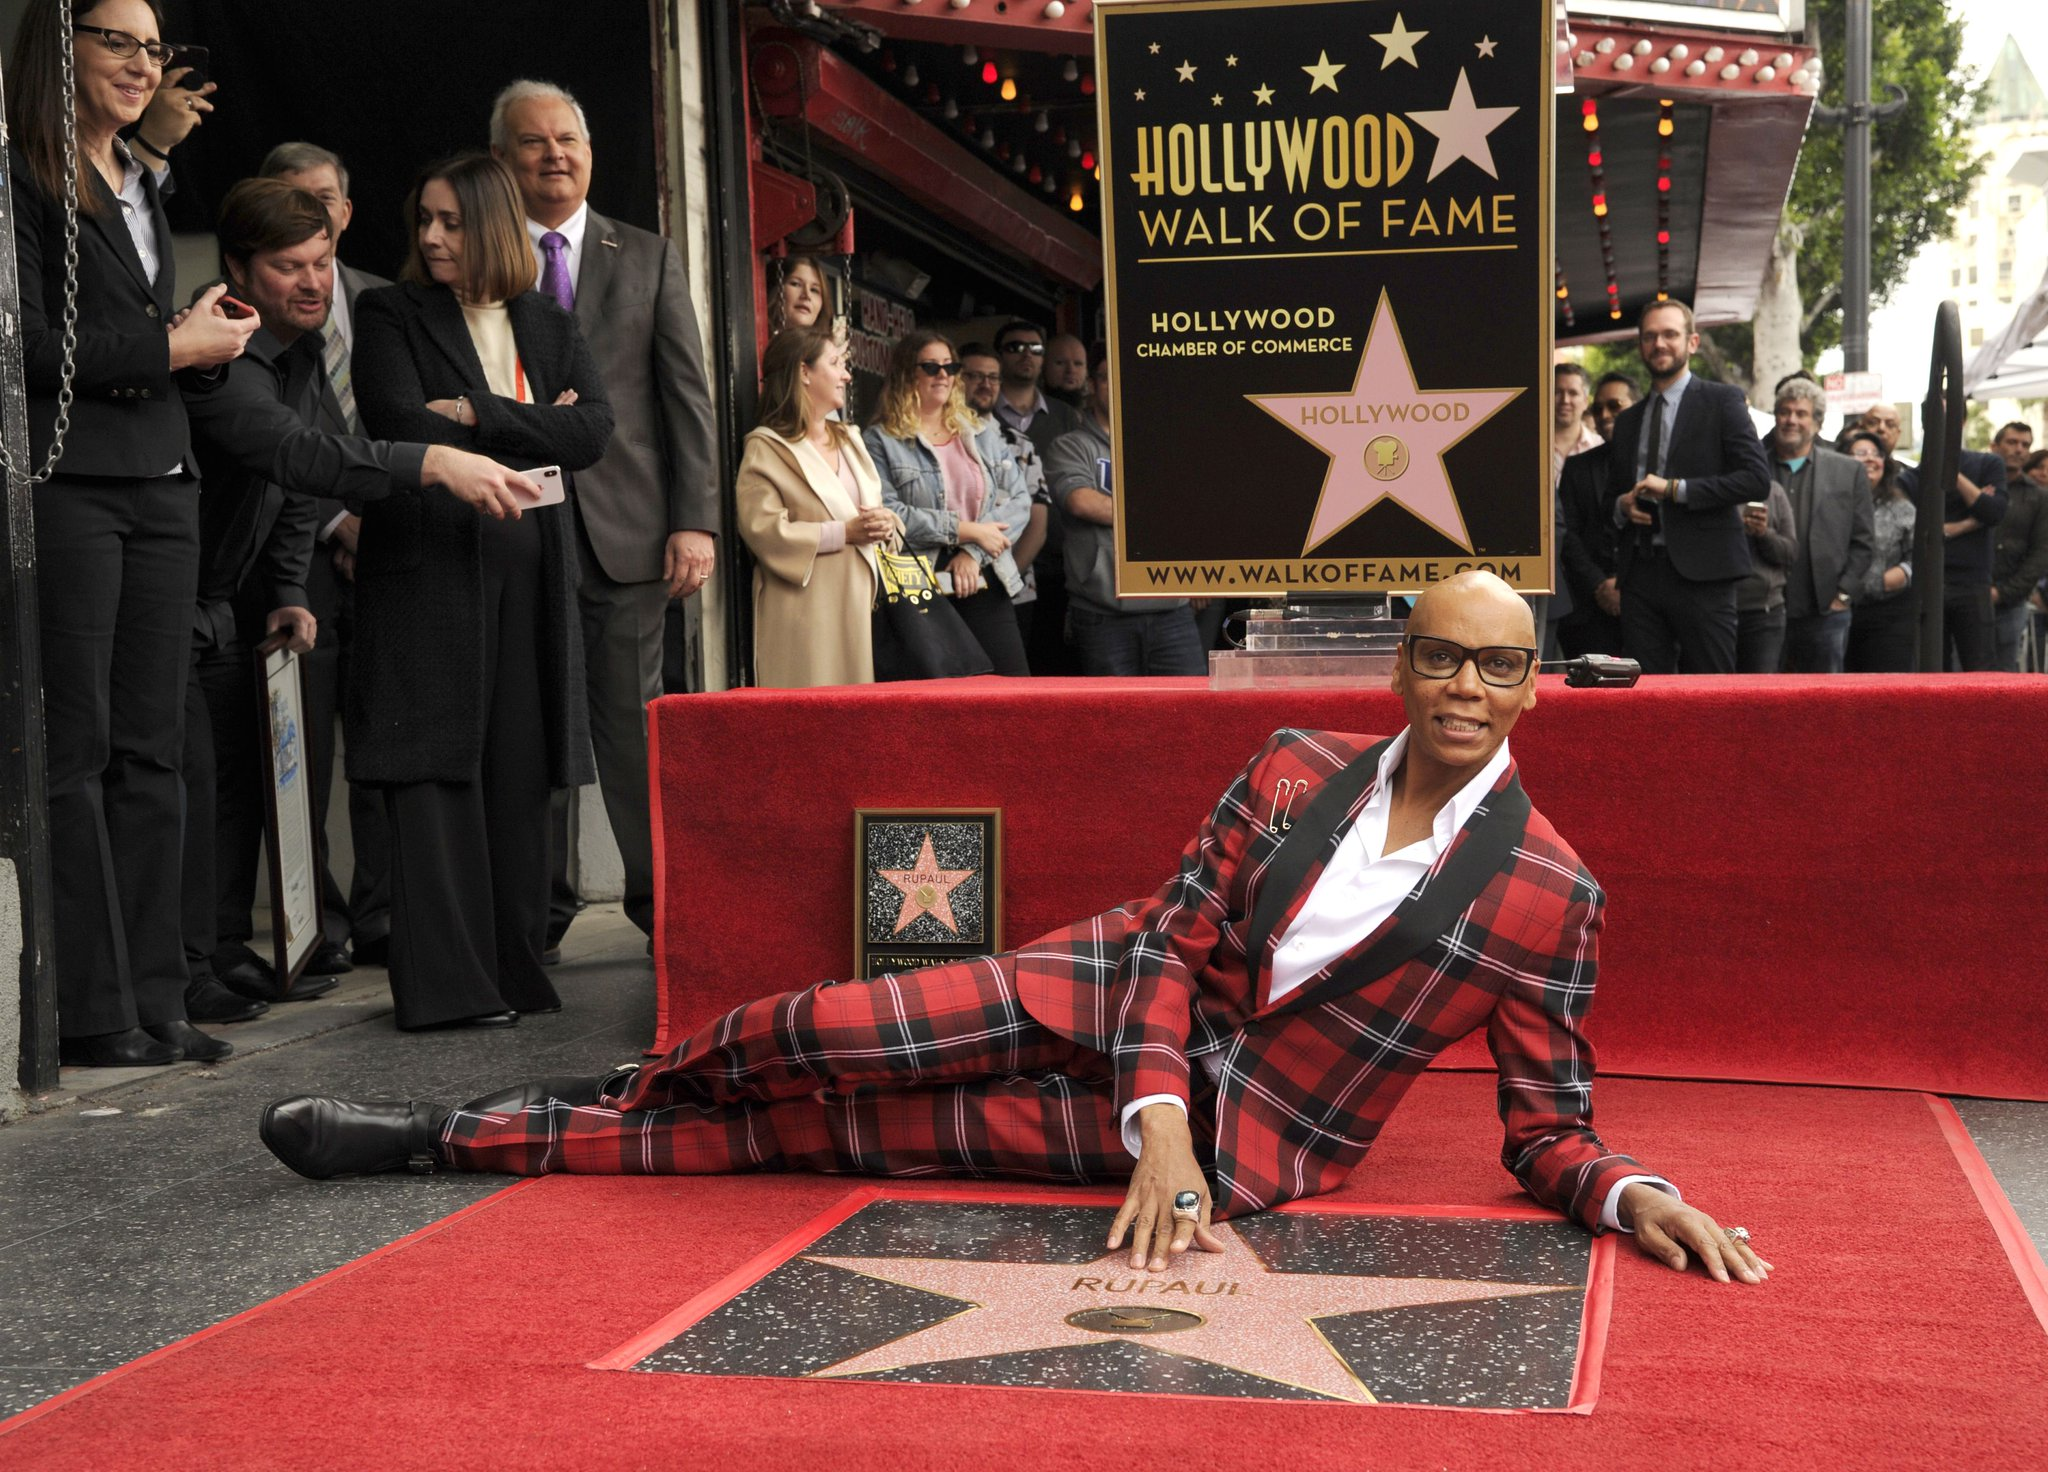 .@RuPaul poses with his shiny new star on the Hollywood Walk of Fame https://t.co/eEGaM3EdmV https://t.co/ligZEG7yxd